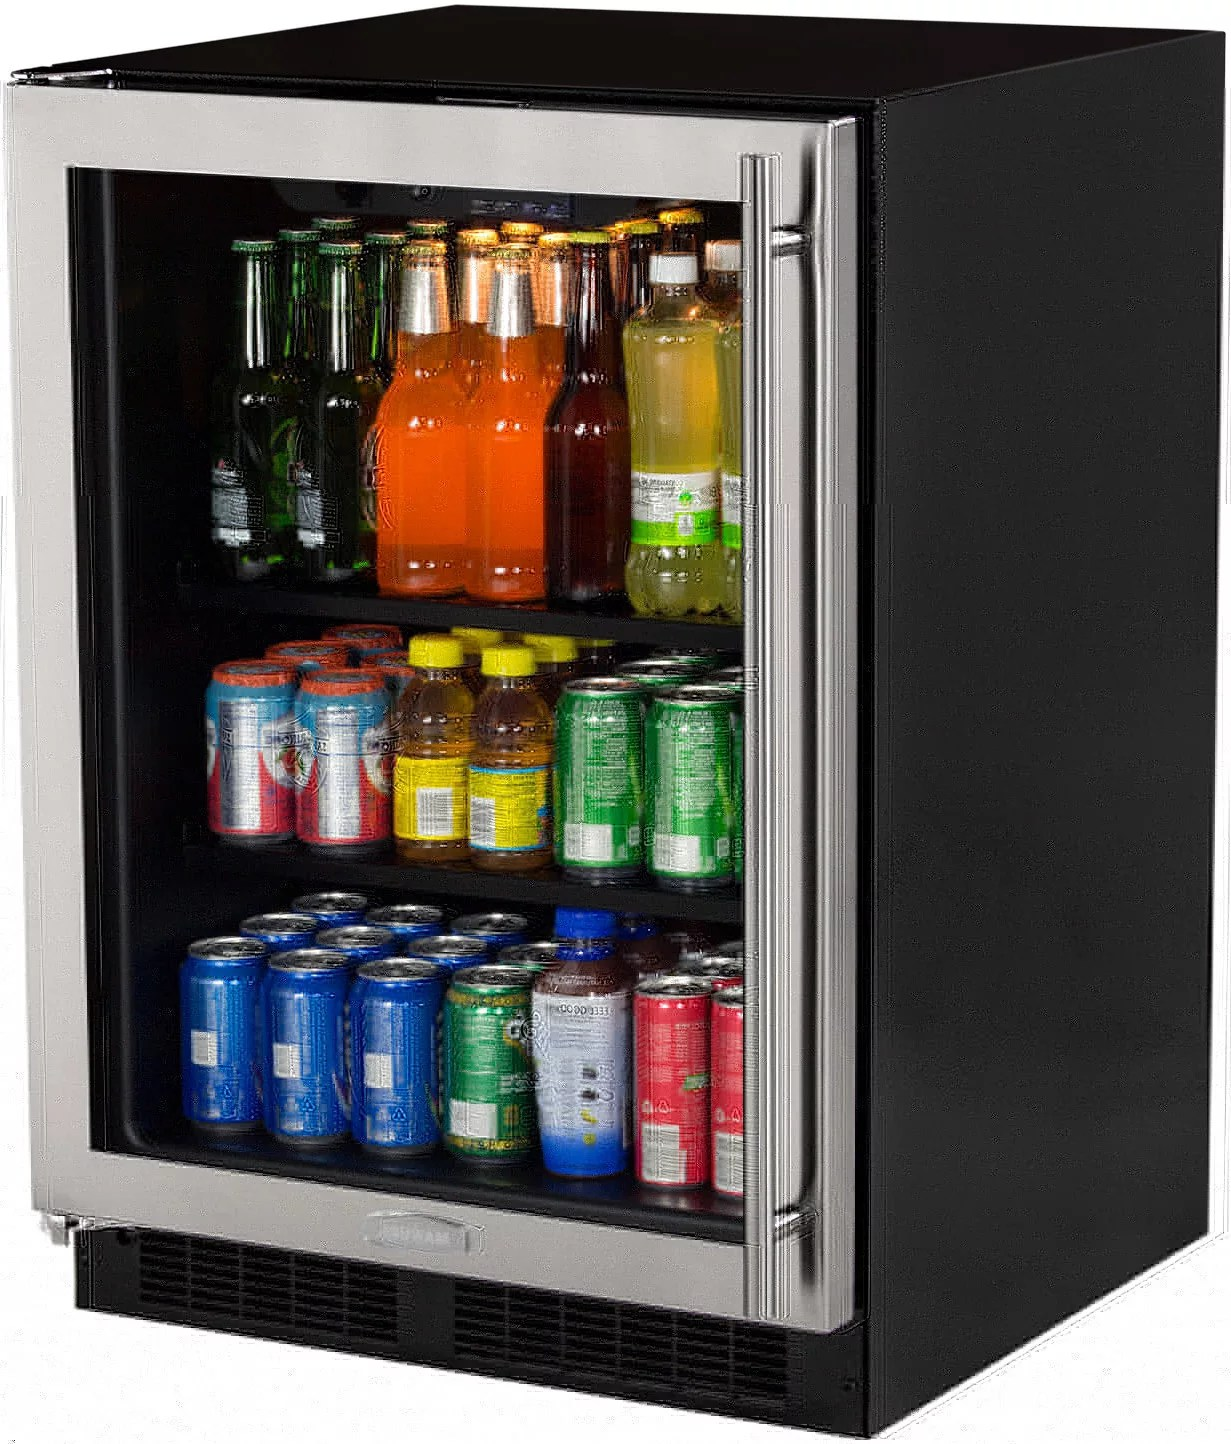 Marvel ML24BCG0LS 24 Inch Builtin Beverage Center with